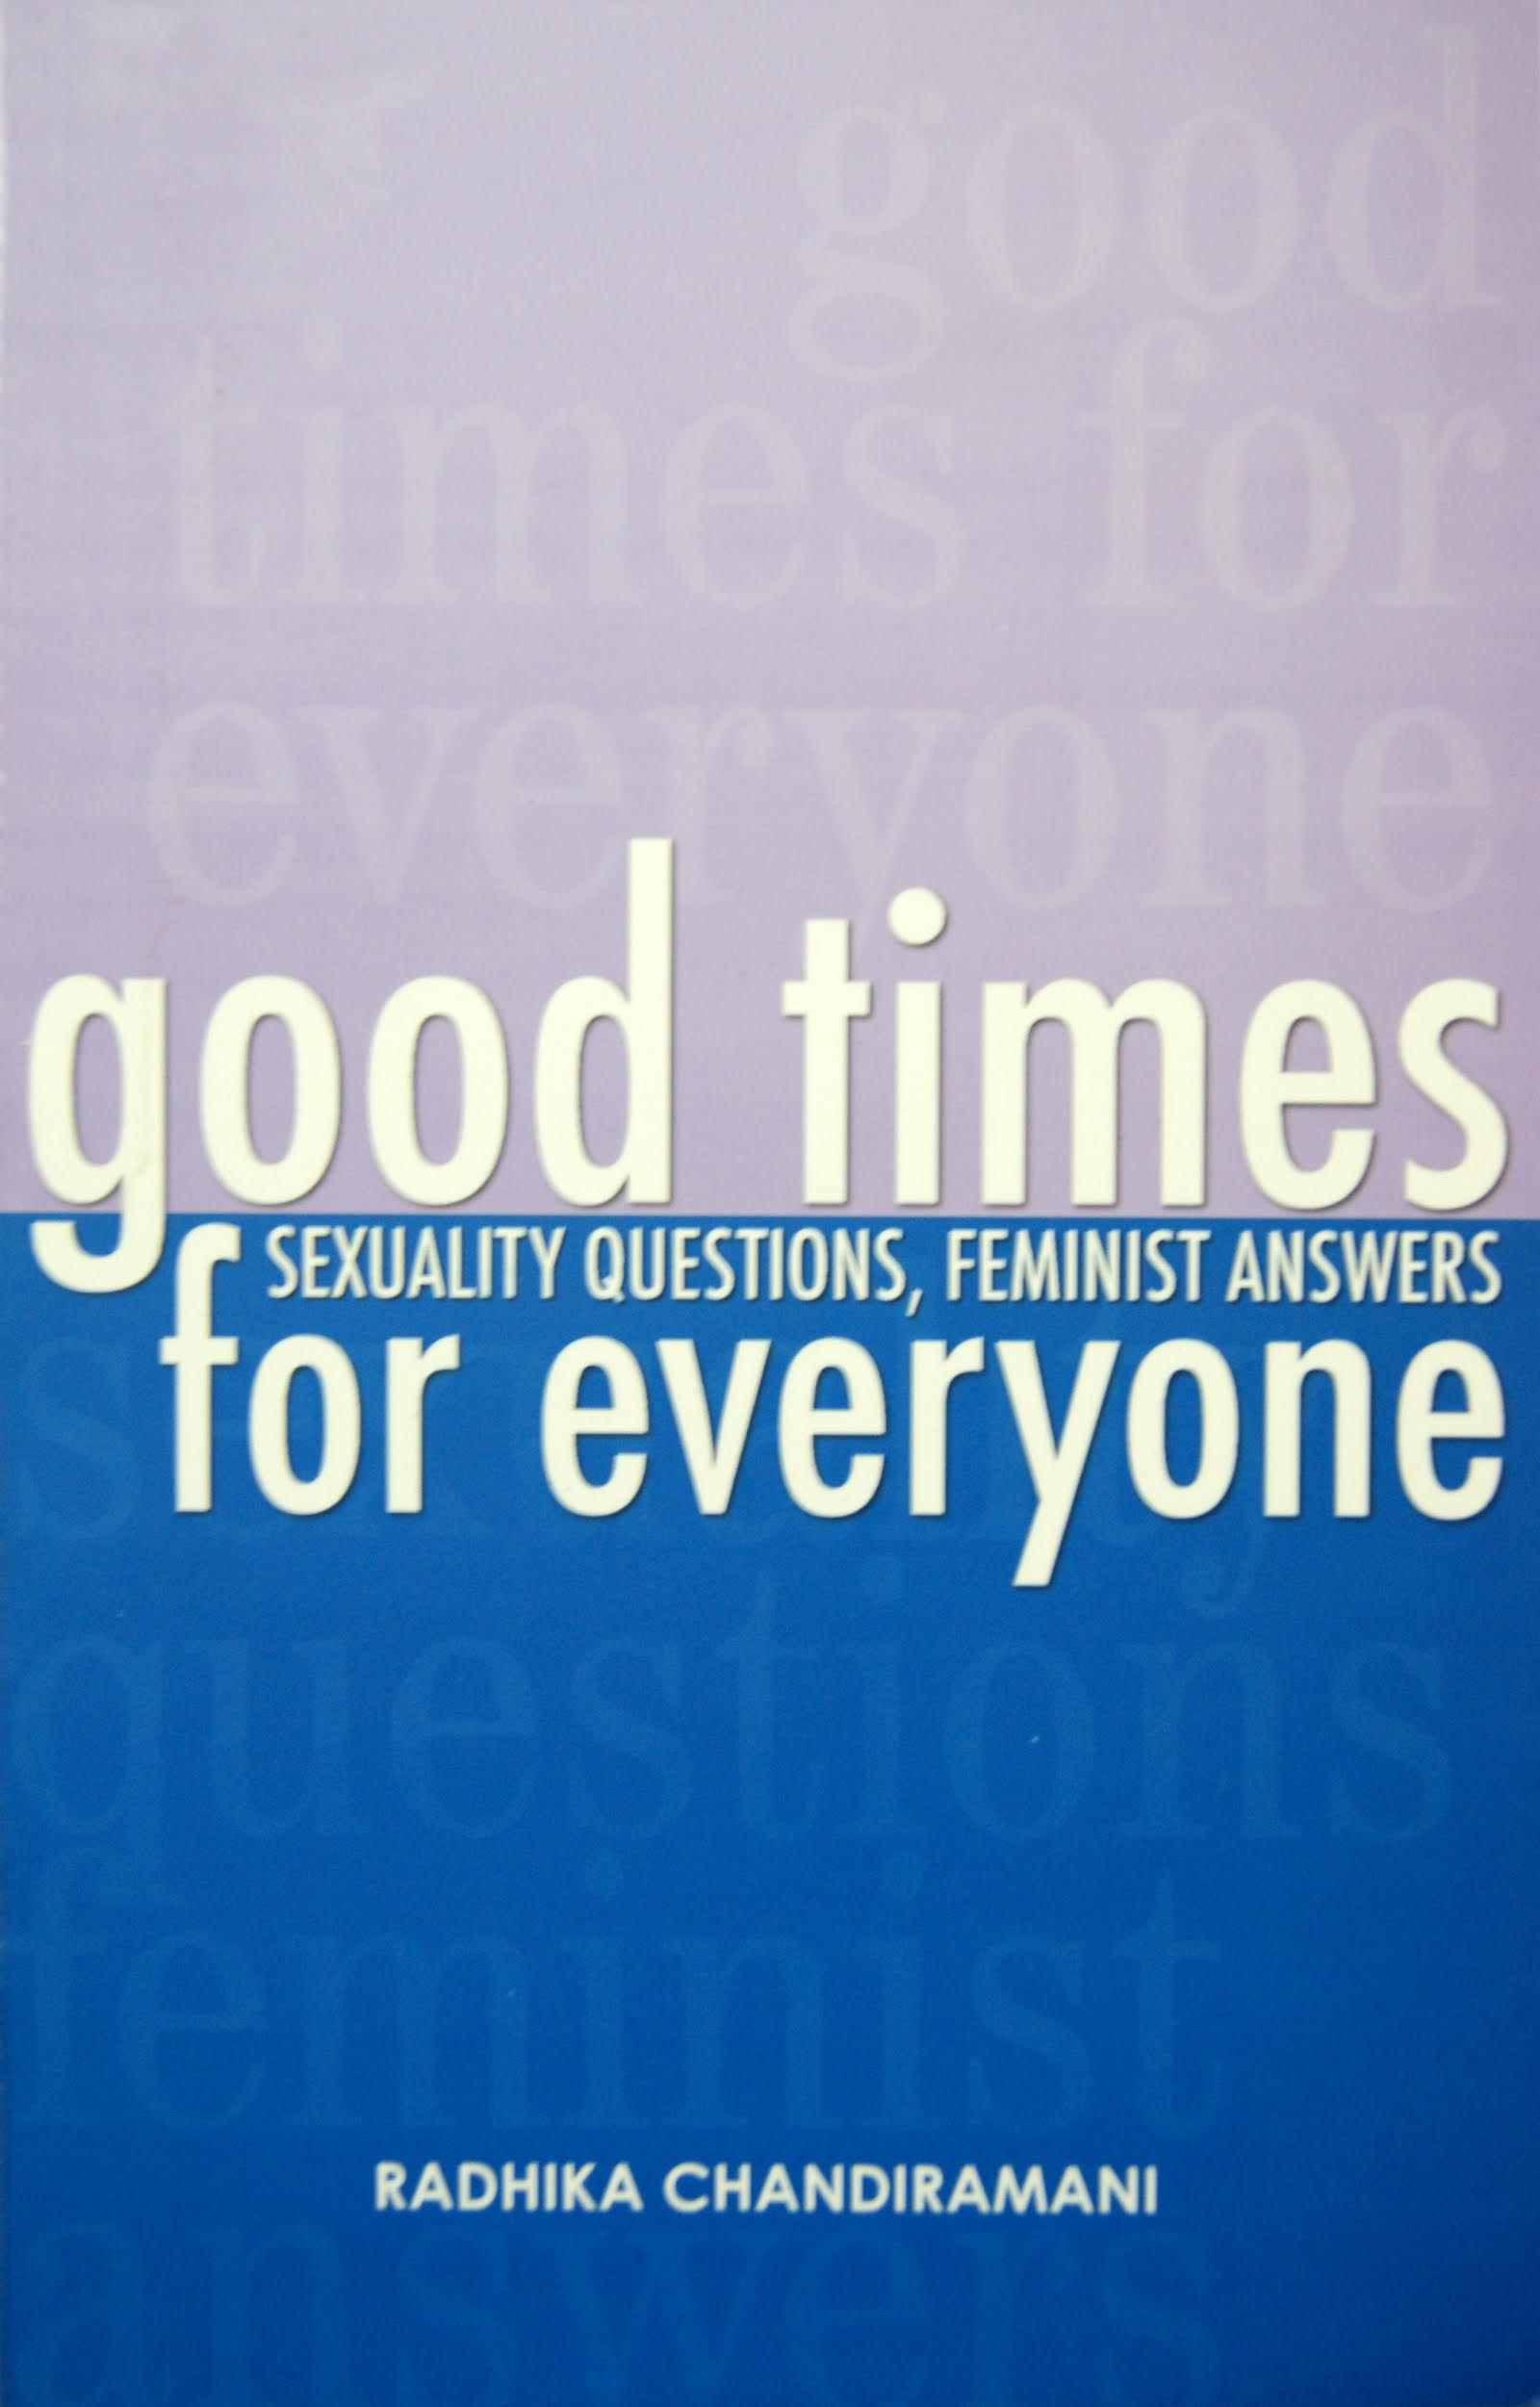 The book cover of 'Good Times for Everyone: Sexuality Questions, Feminist Answers'